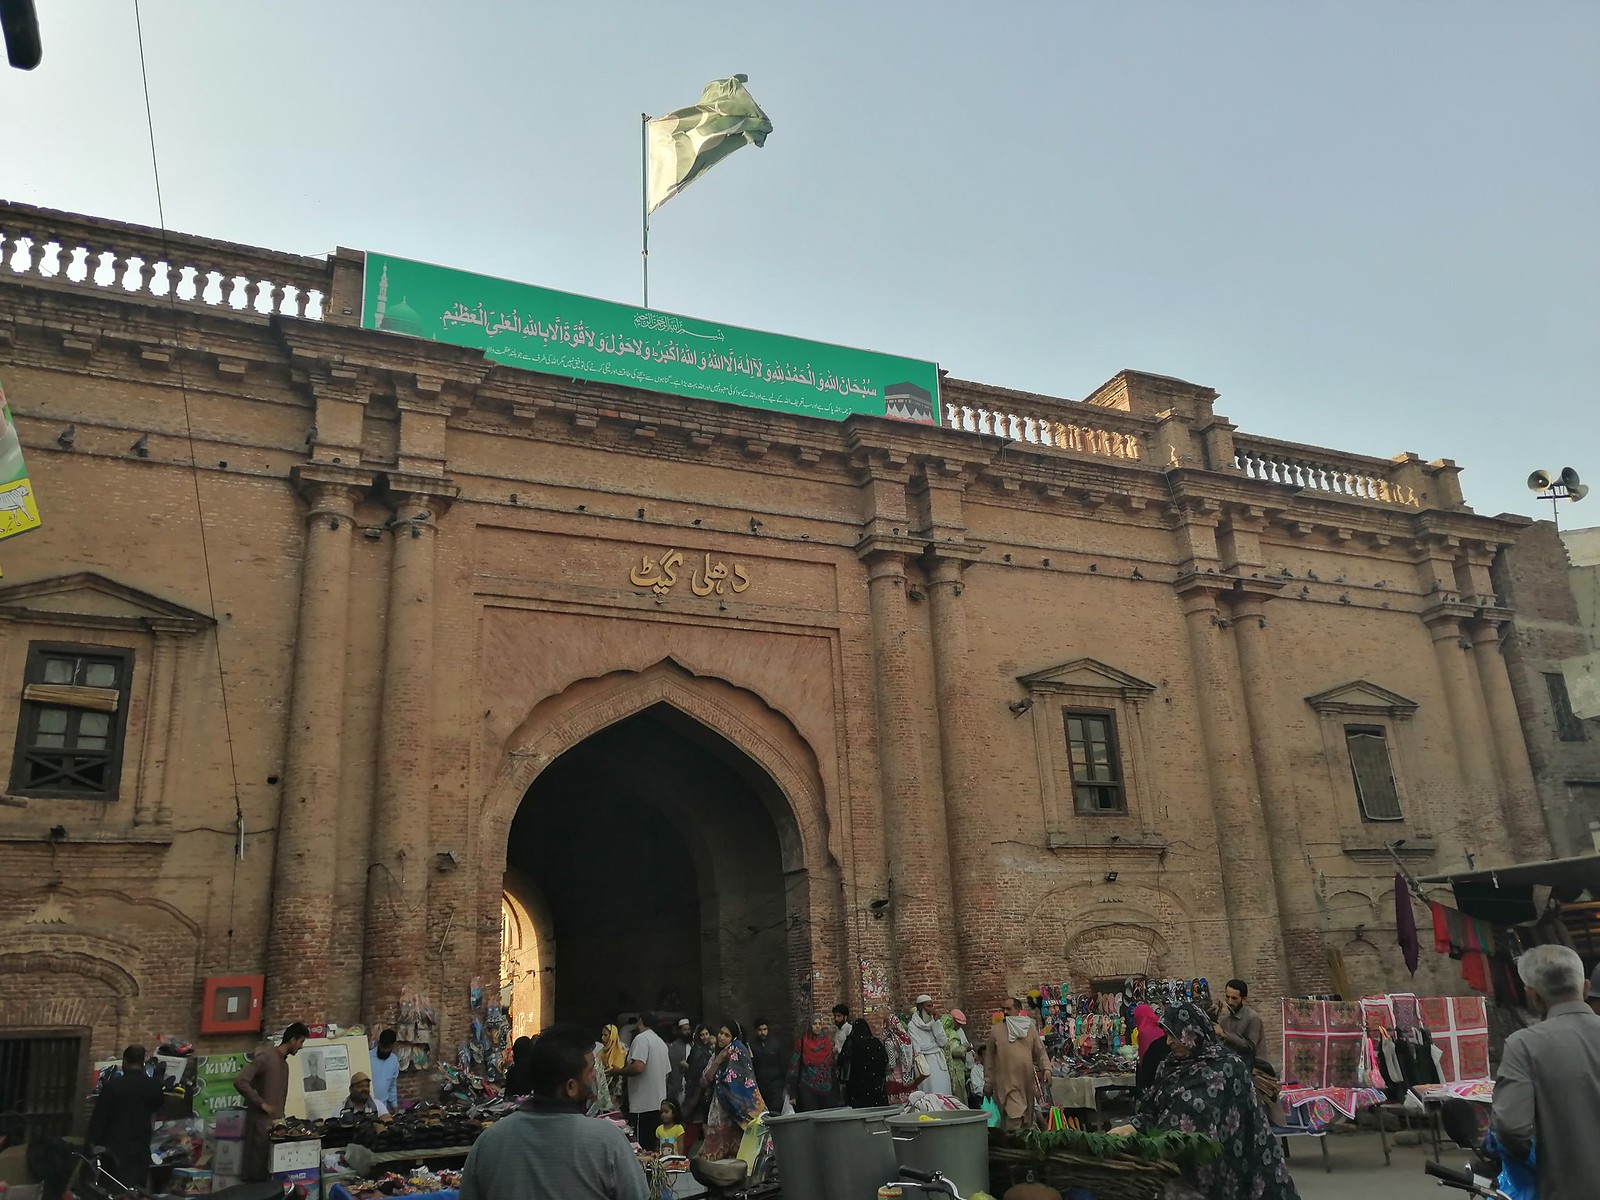 Image of Delhi Gate with Auto Mode on Honor 8X